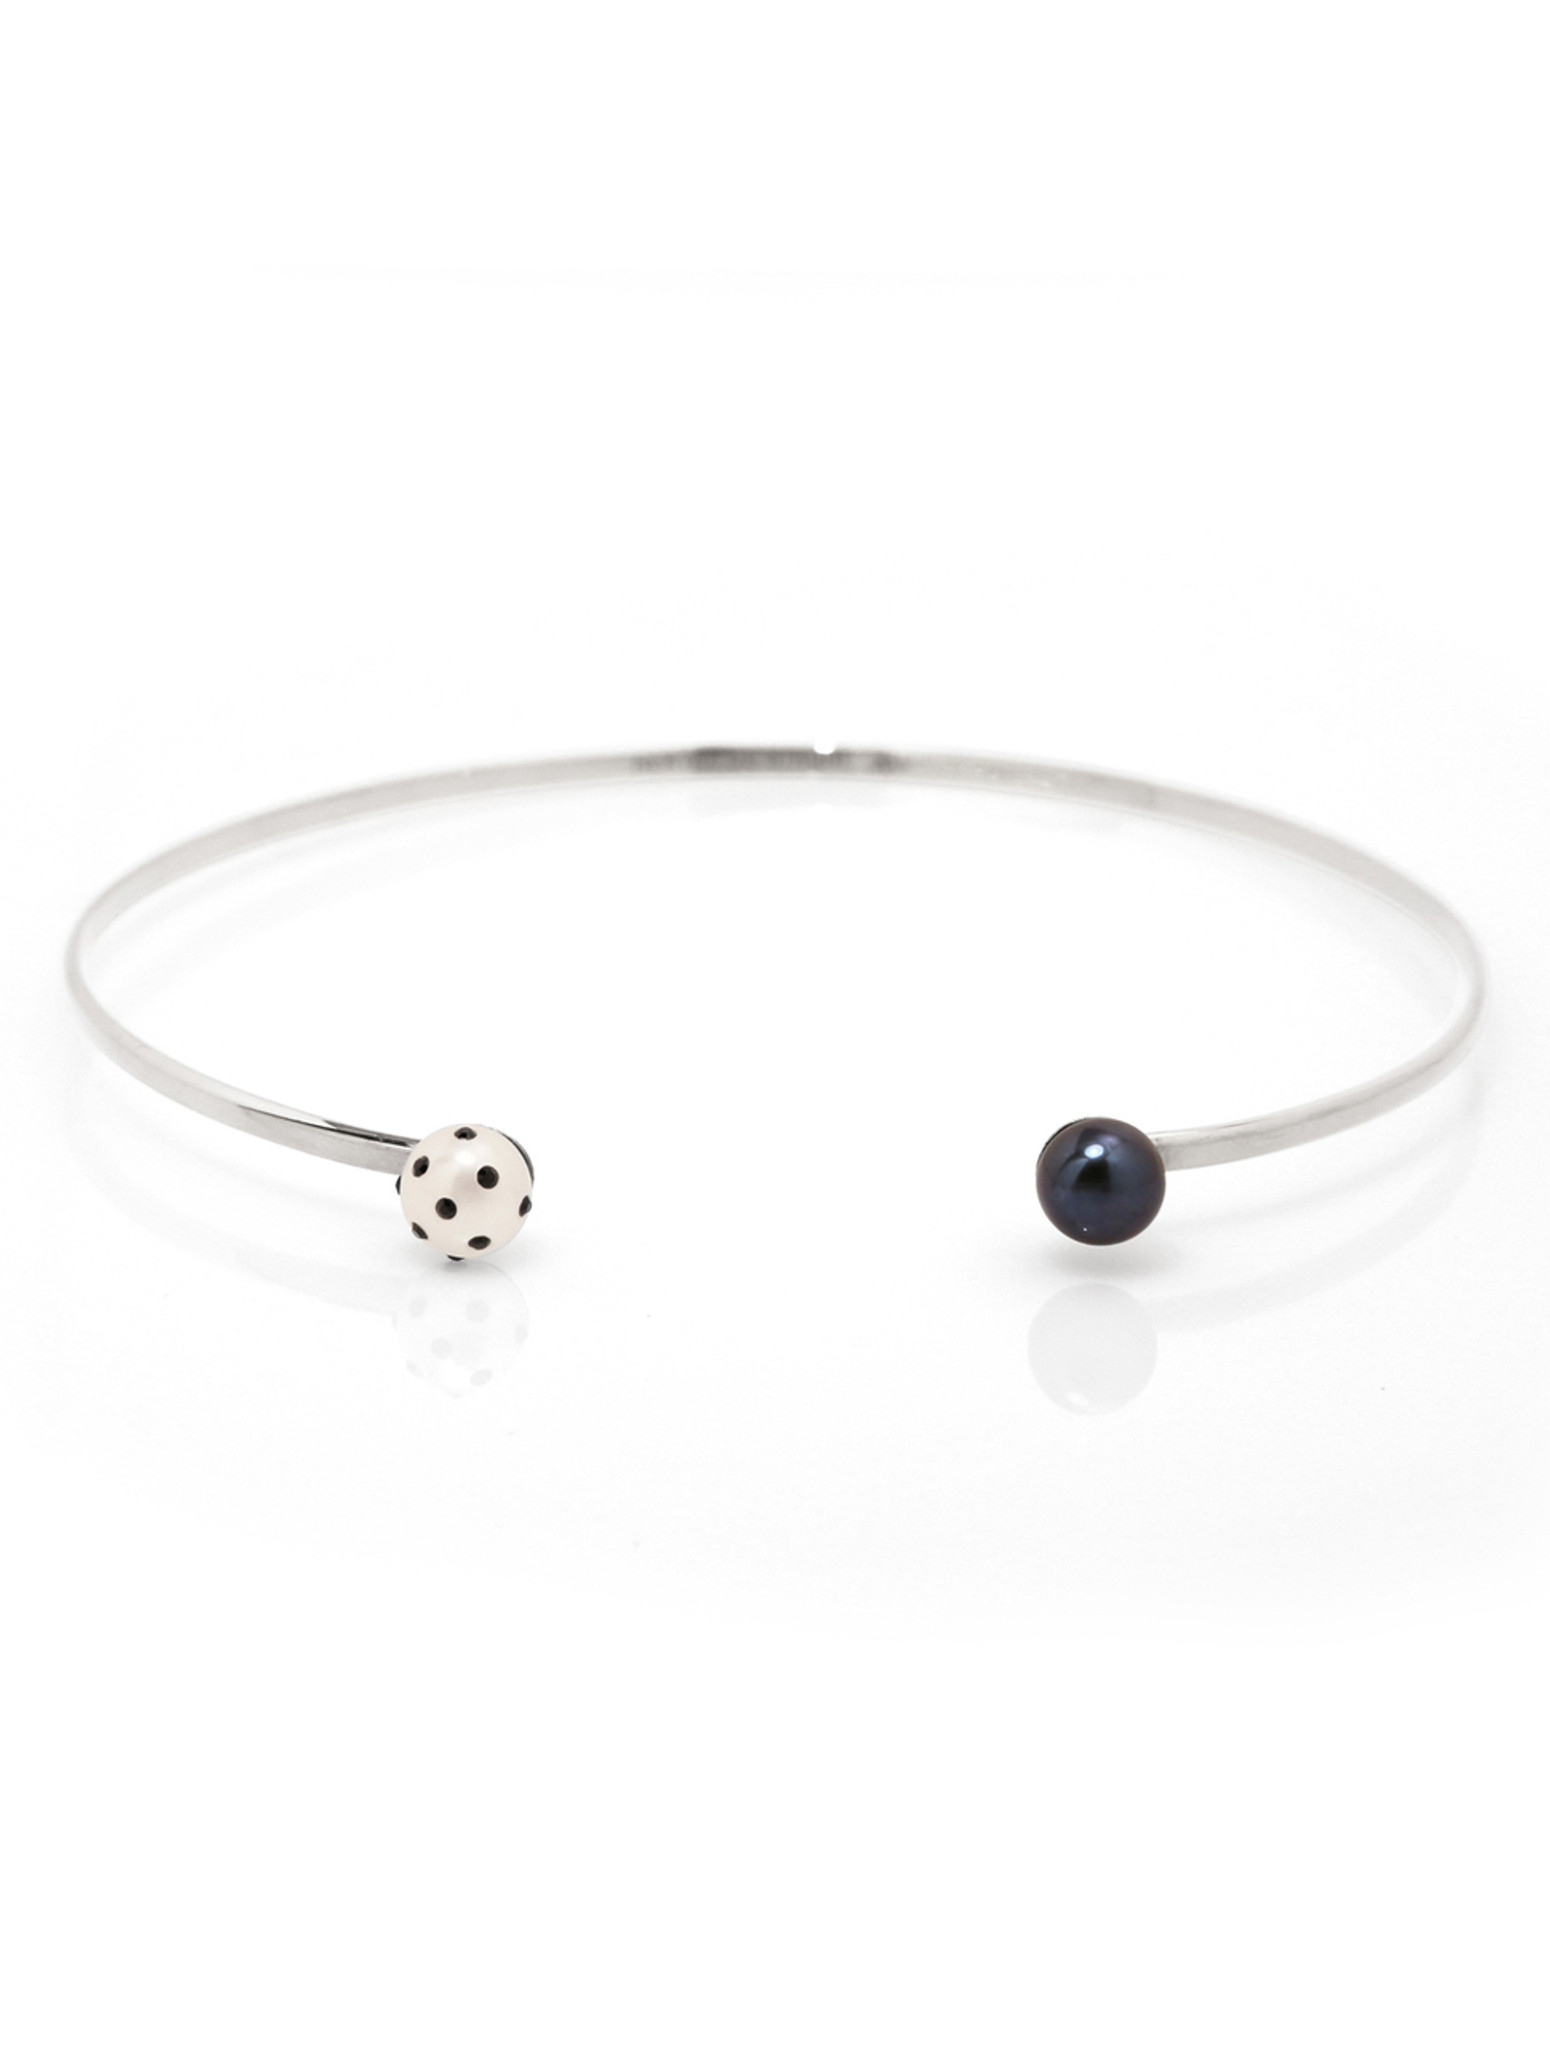 LadyBug Diamond & Black Pearl Silver Choker by Nektar De Stagni